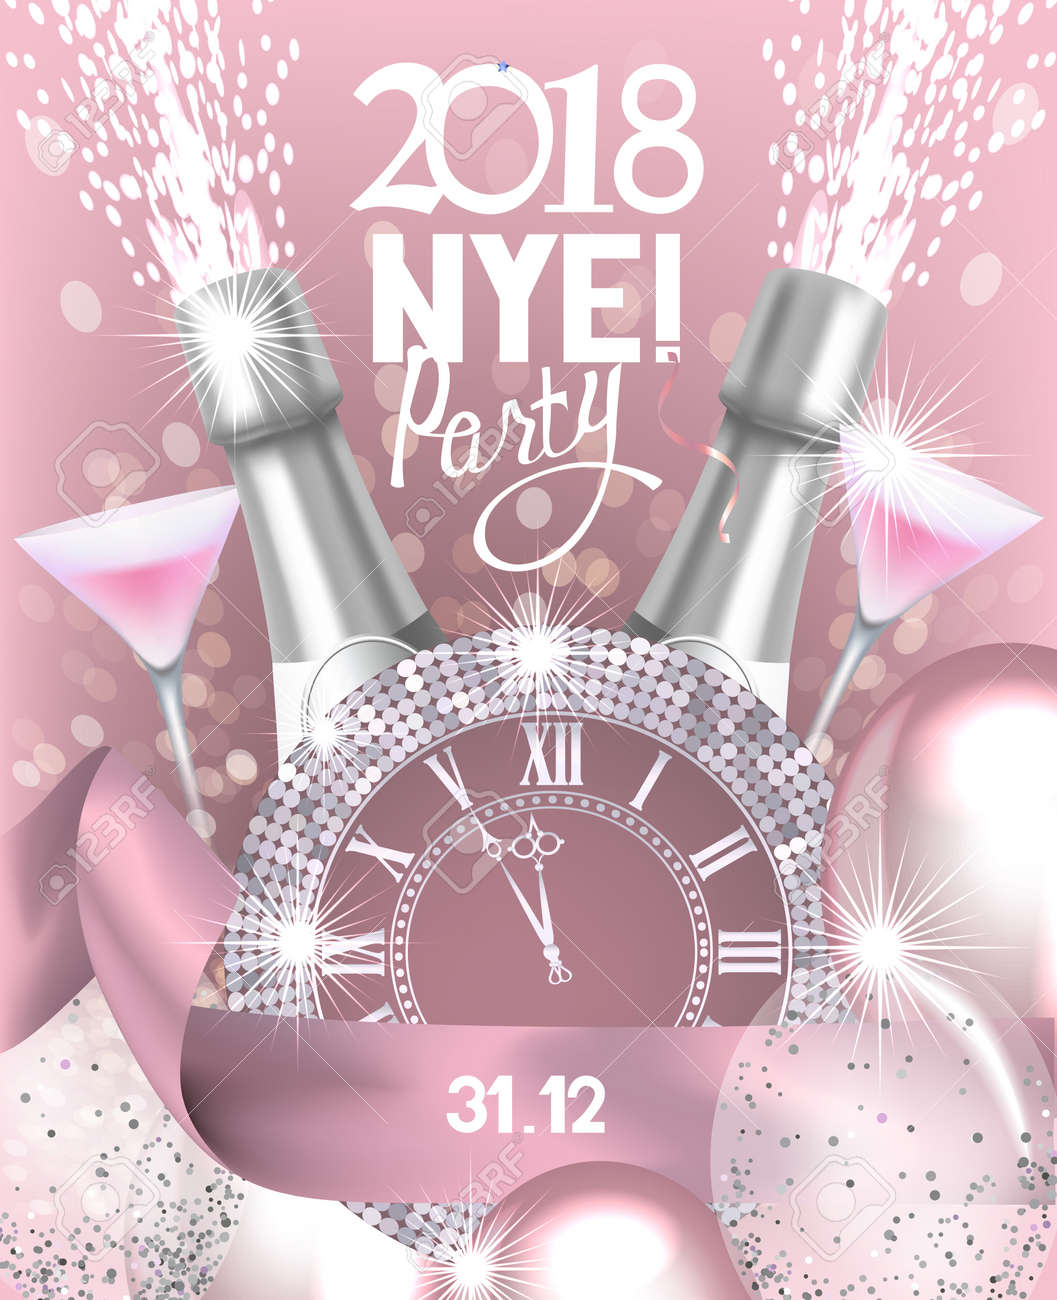 new year eve party invitation card with a bottle of champagne glasses watch and